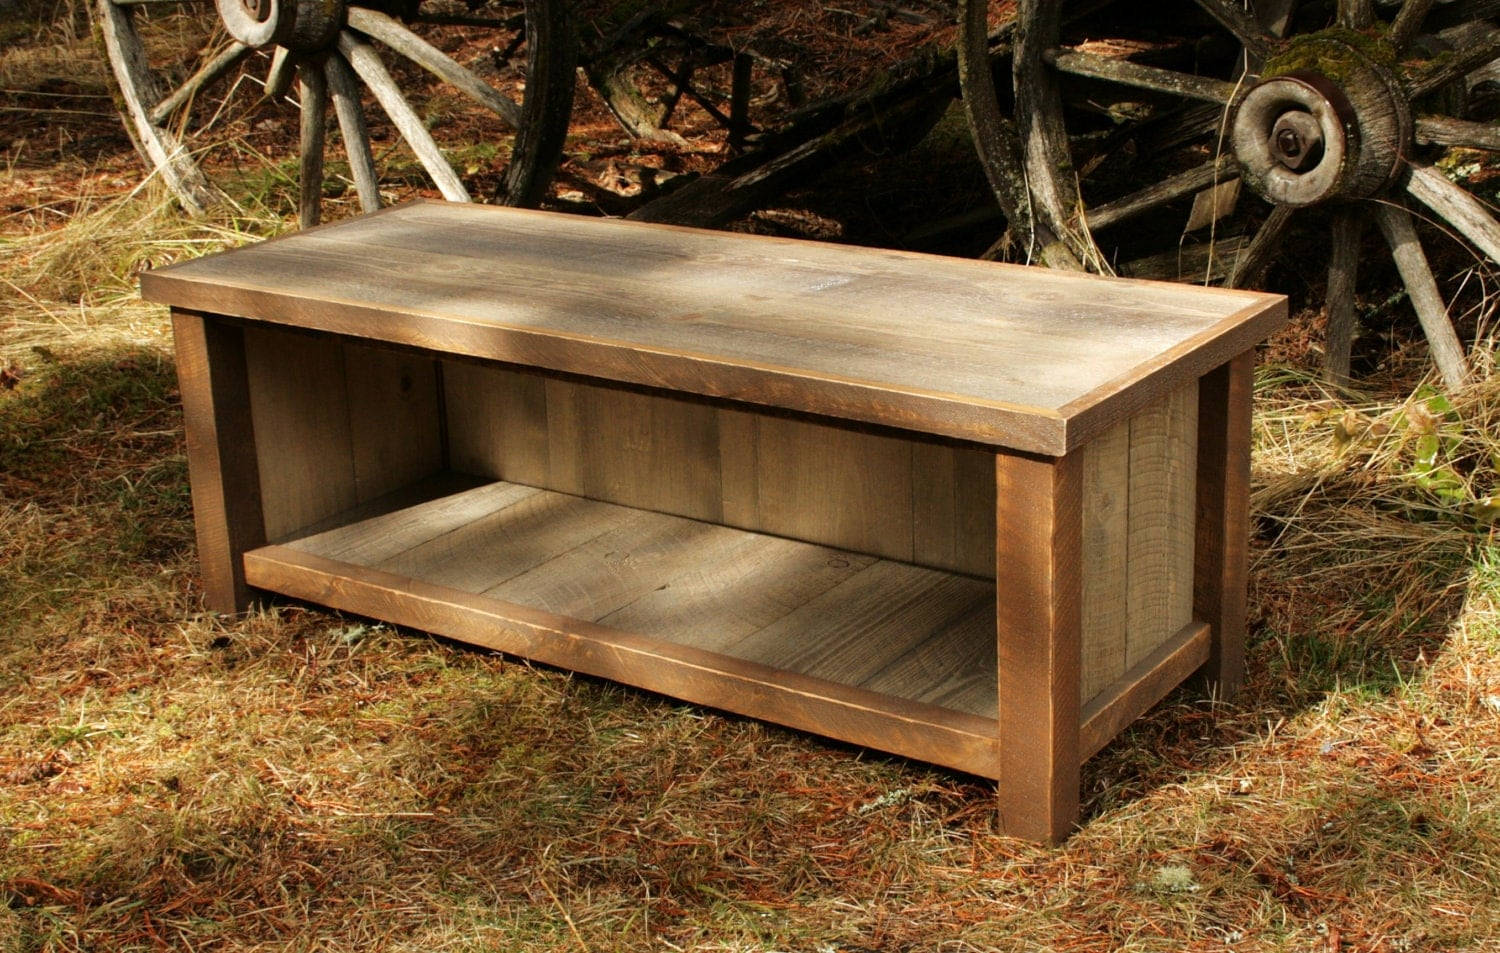 Rustic reclaimed mudroom entry bench by echopeakdesign on etsy Mud room benches